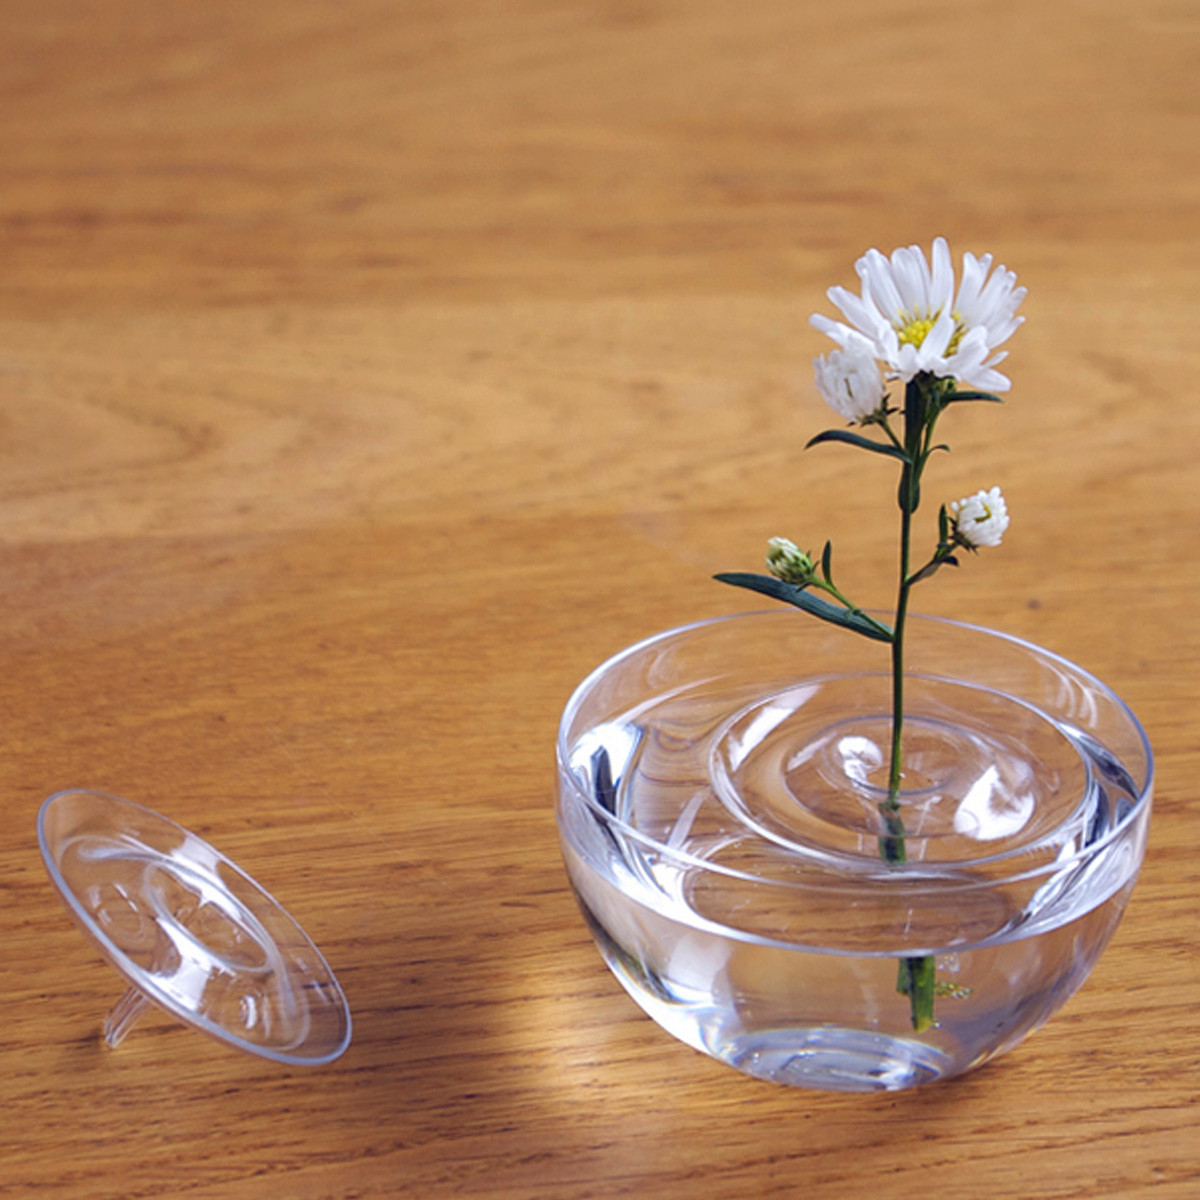 14 Great Clear Glass Rocks for Vases 2021 free download clear glass rocks for vases of test equipment clear floating plant vase plate dish creative water intended for clear floating plant vase plate dish creative water wave transparent glass bowl